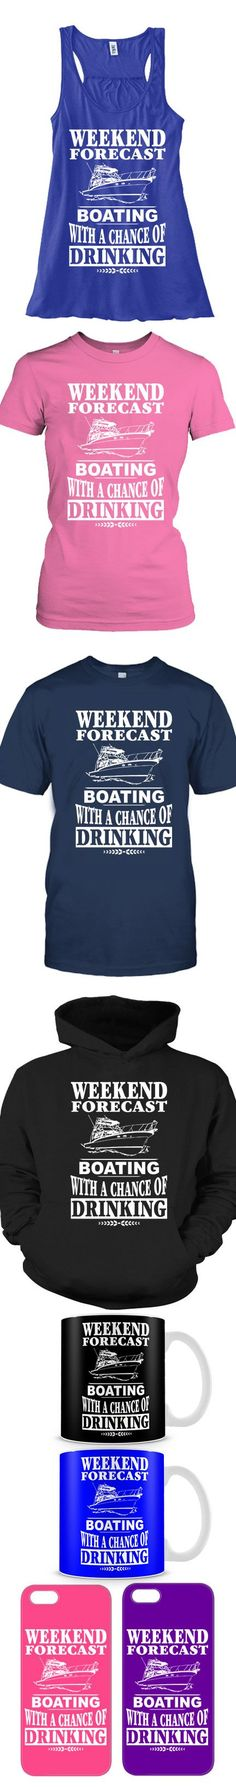 Love Boating On Weekends?Then Click The Image To Buy It Now or Tag Someone You Want To Buy This For.